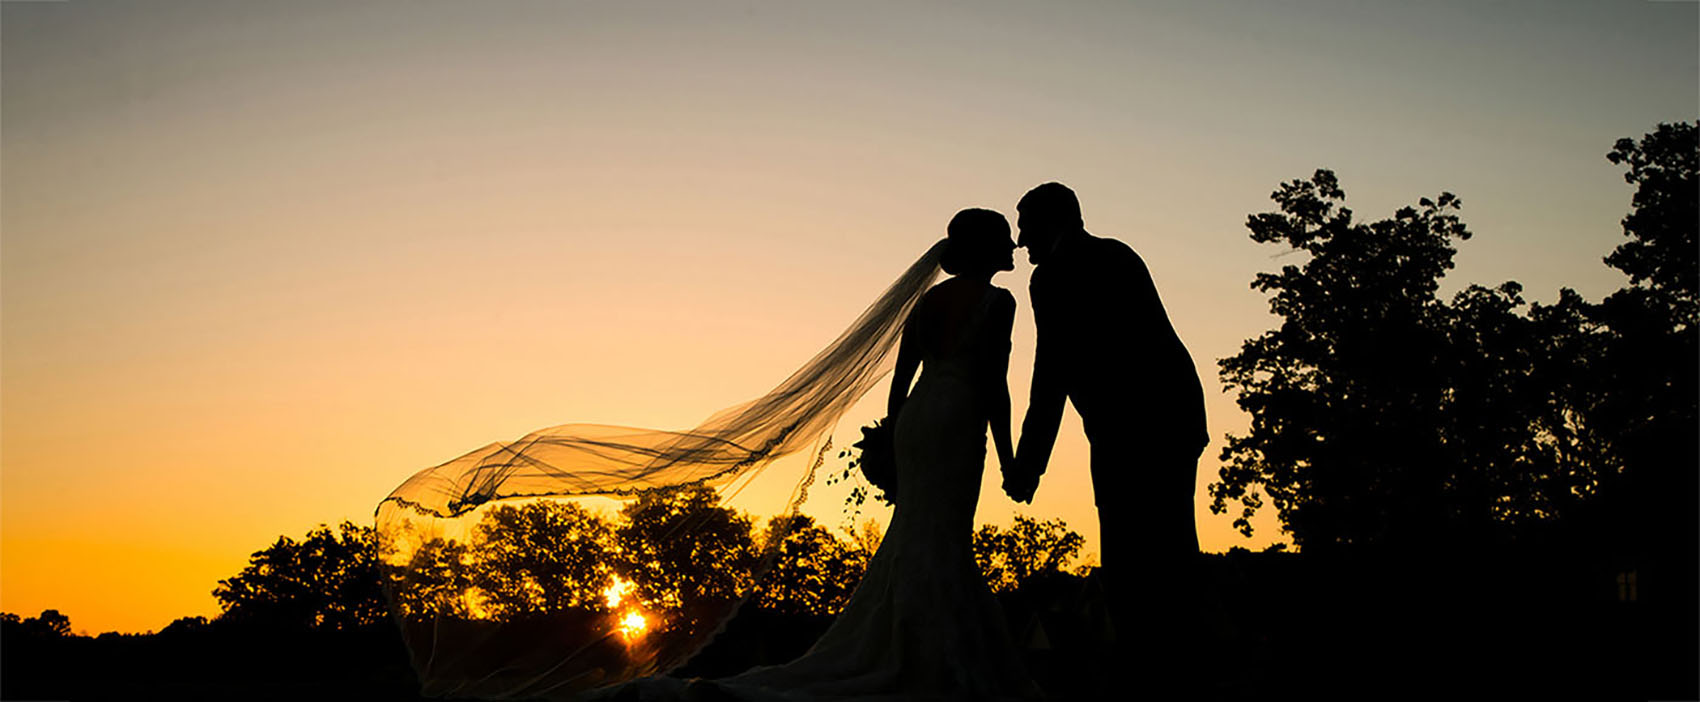 Silhouette of a bride and groom about to kiss at sunset.